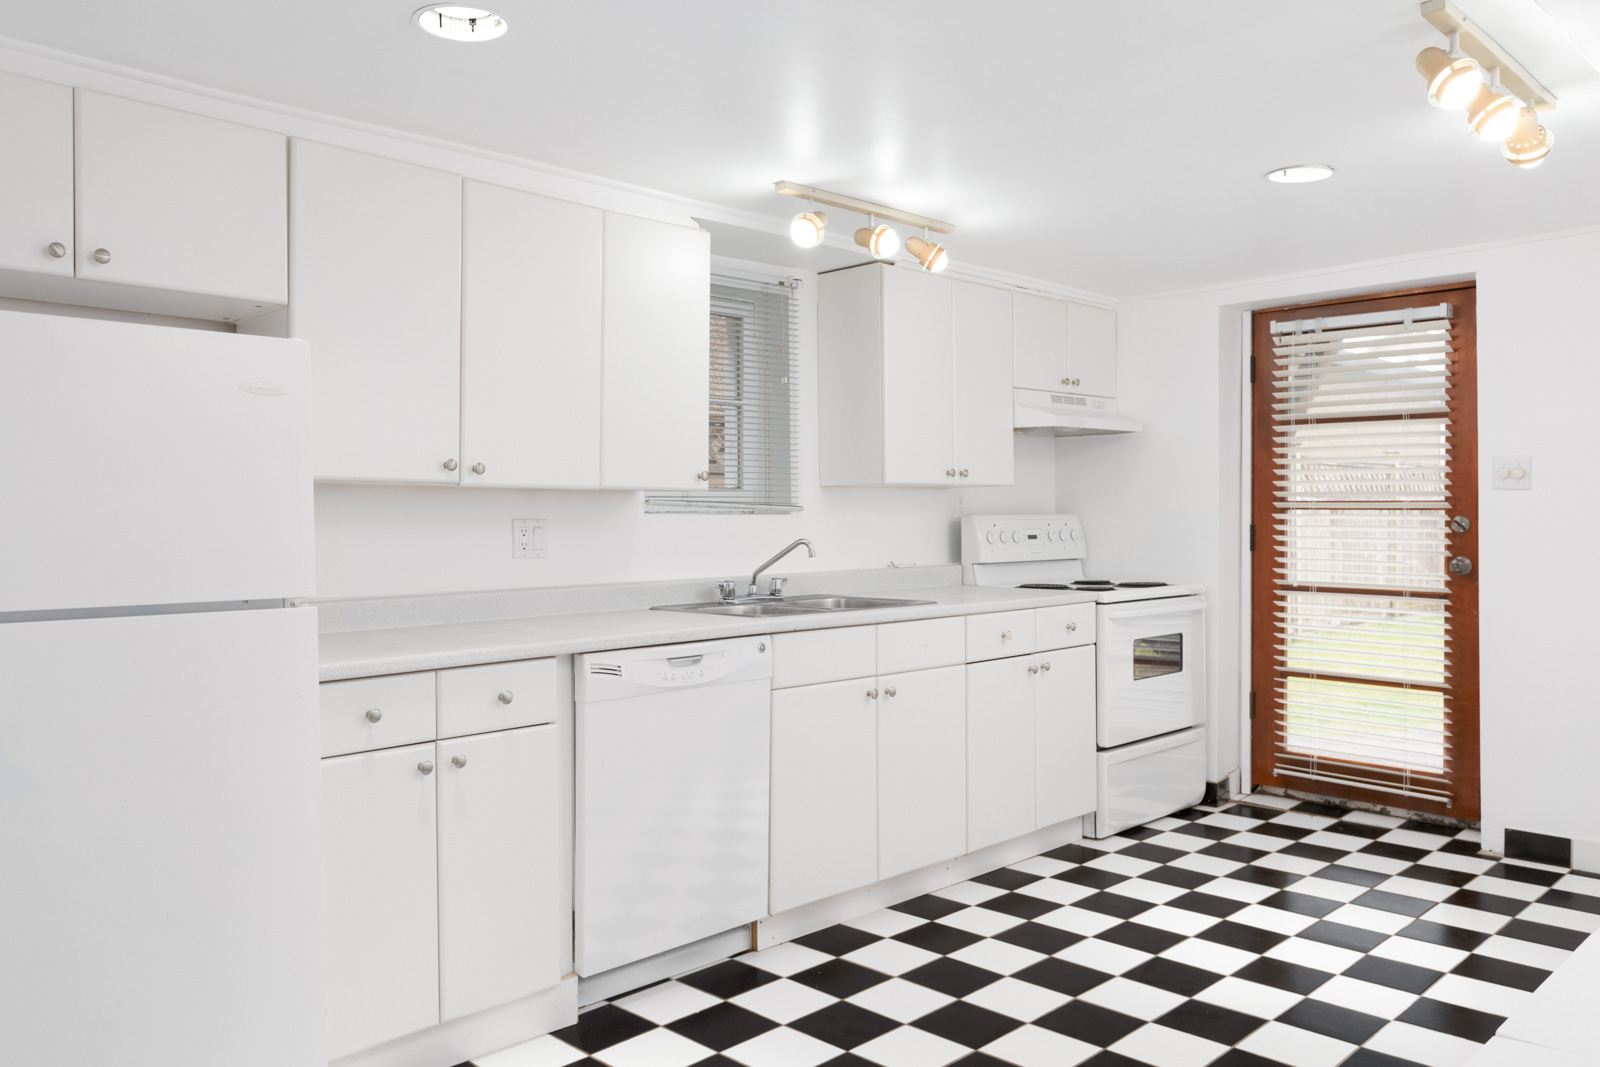 kitchen with checkered black and white floor tiles and white cabinets with door to outside on right